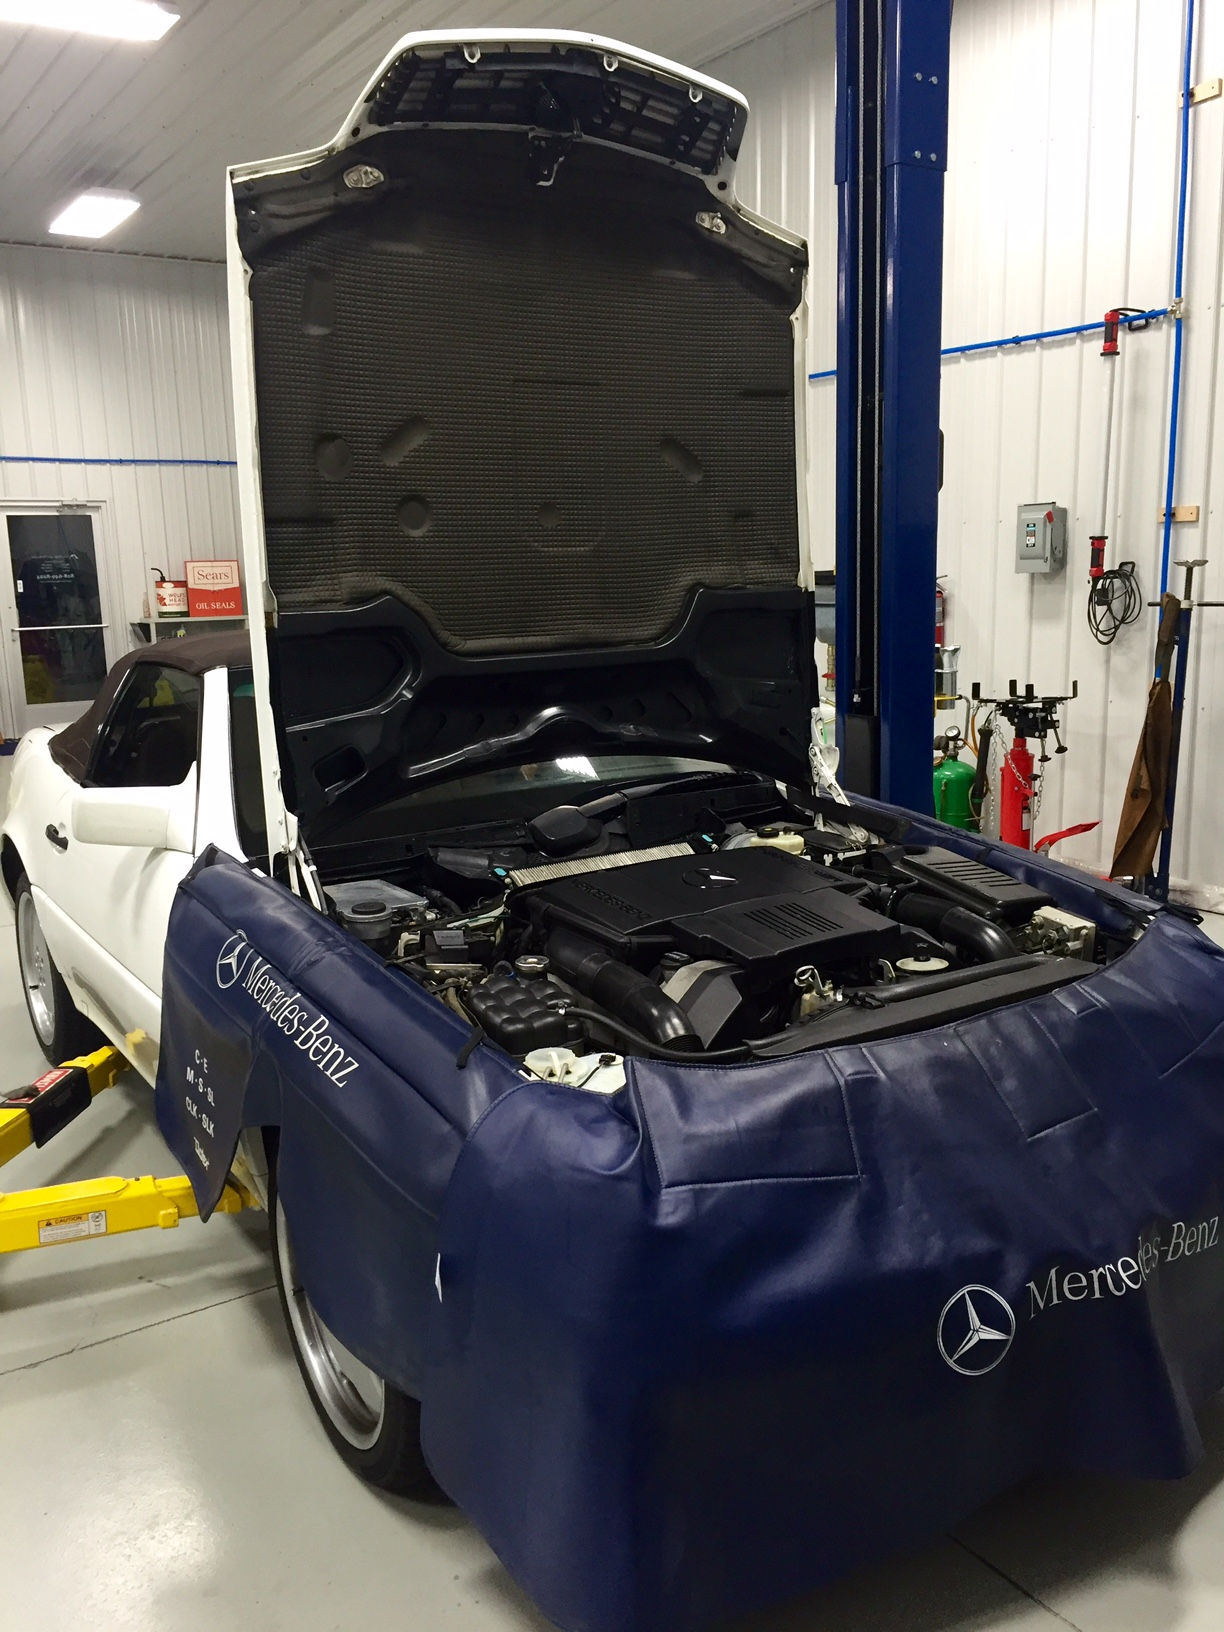 We take pride in taking care of your vehicle.